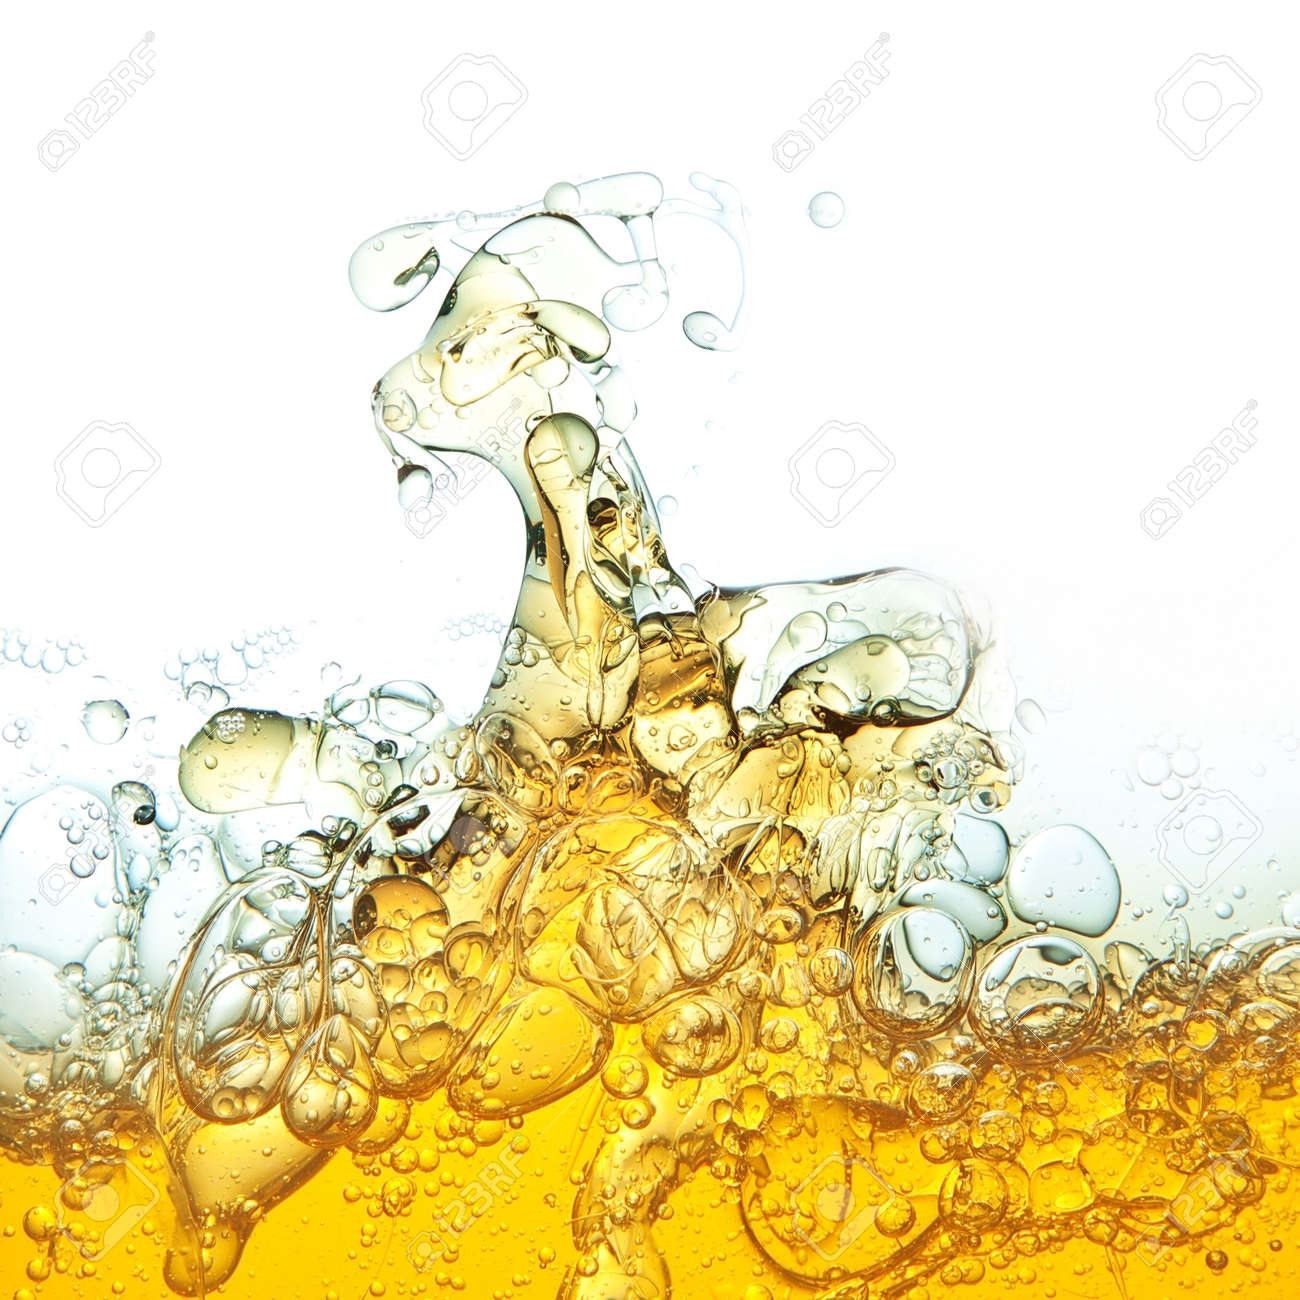 Abstraction, oil bubbles in water Stock Photo - 13983715